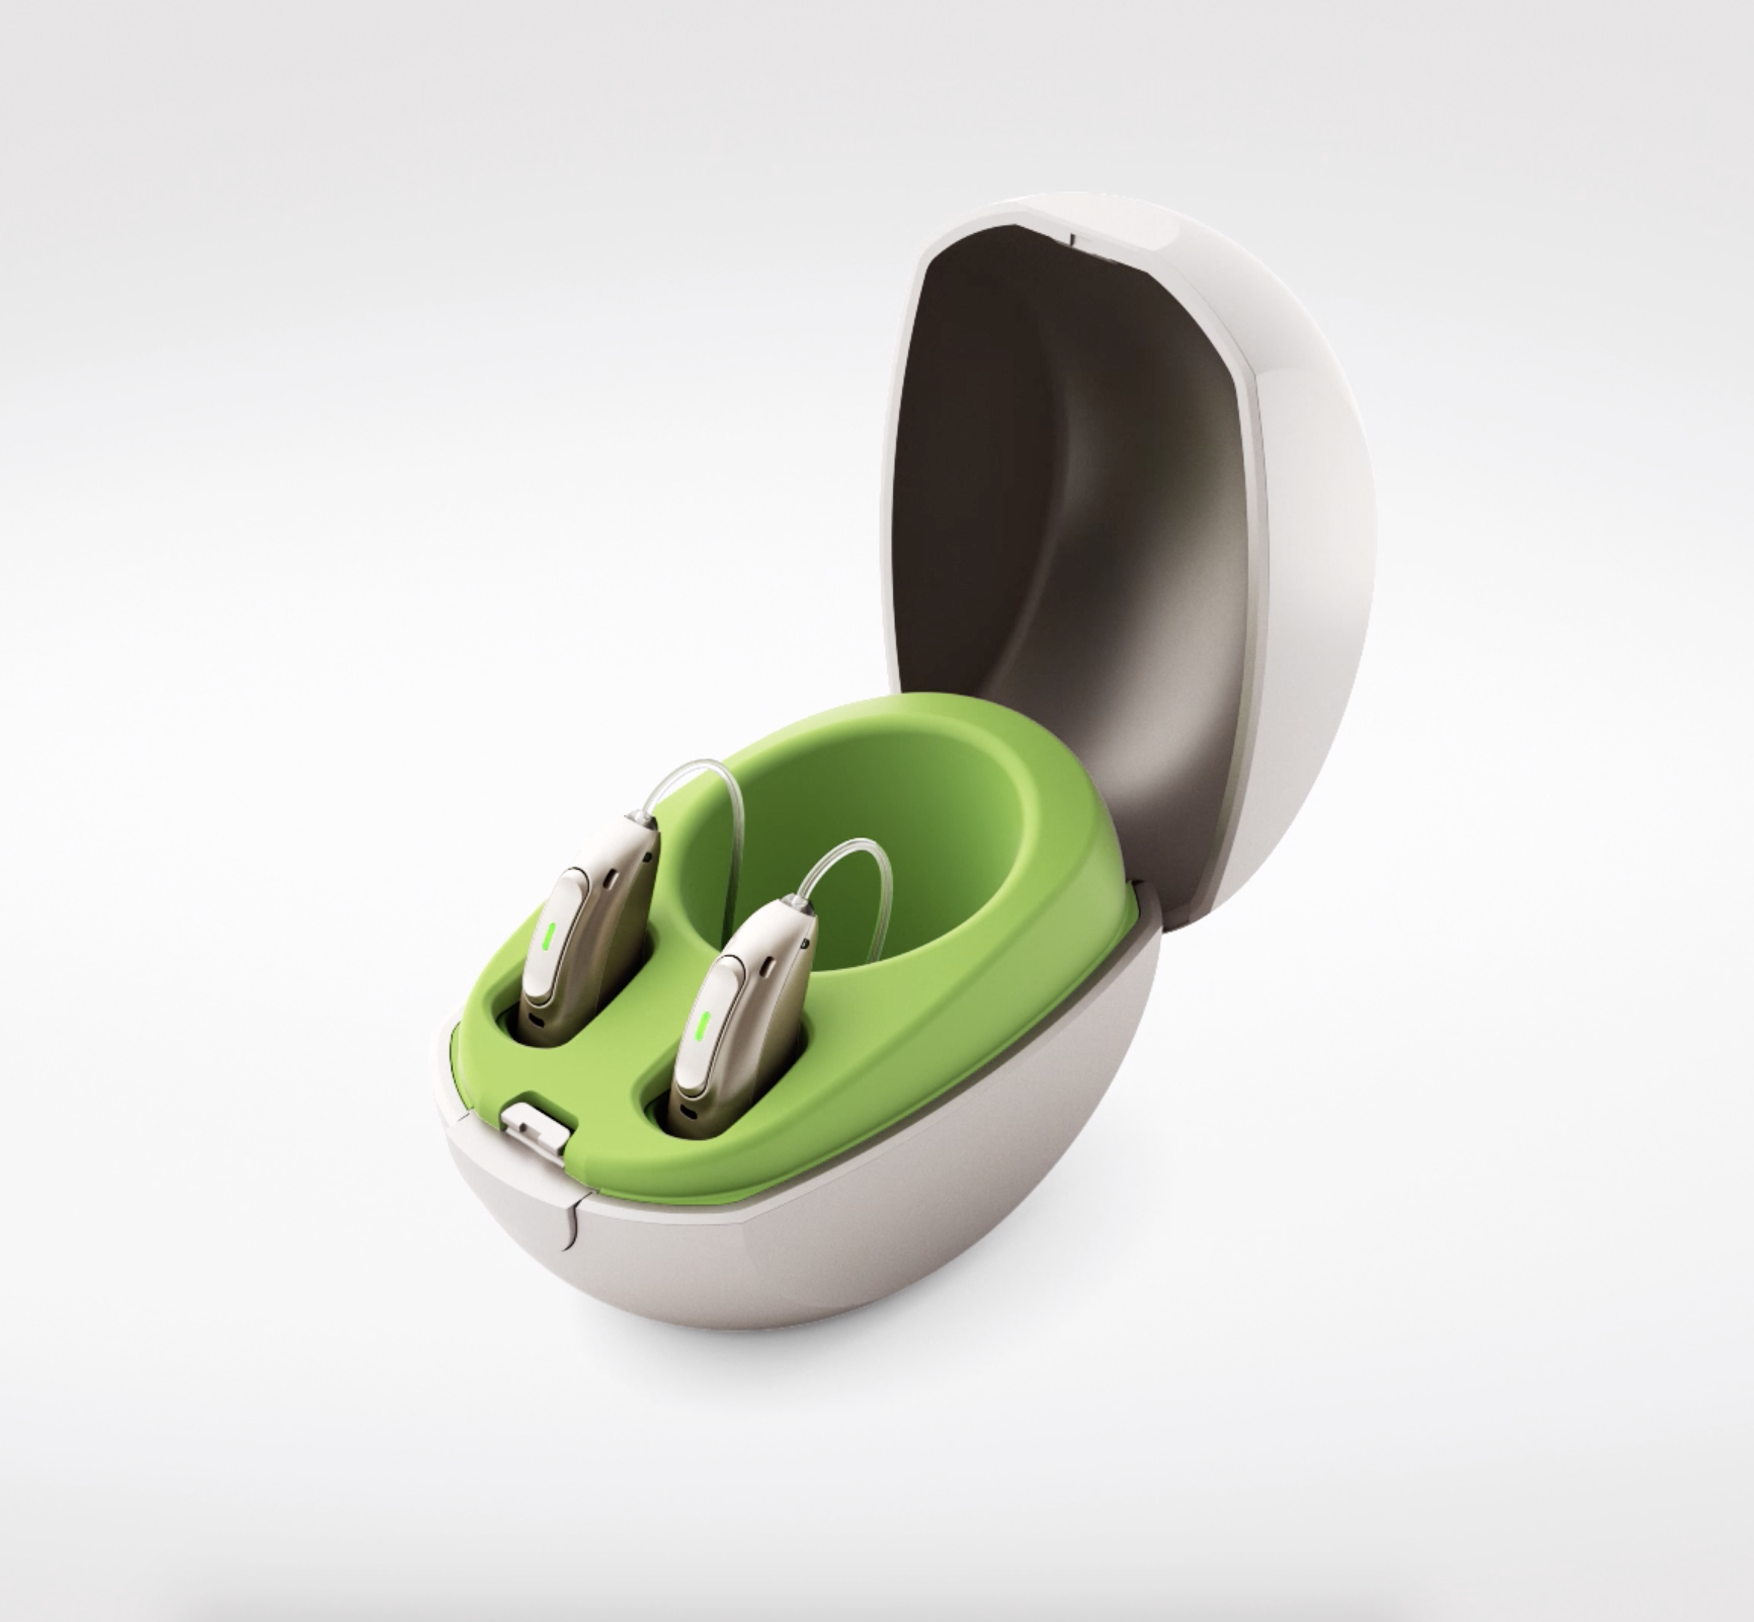 Reclaim Phonak's technological leadership - In 2019, Phonak set out to revolutionize the category by introducing the first hearing aid layered with benefits that superseded just sound quality: universal bluetooth connectivity (compatible with all mobile phones), language translation, remote fittings, transcription and rechargeability. Additionally, the design of the product was sleek and stunning.